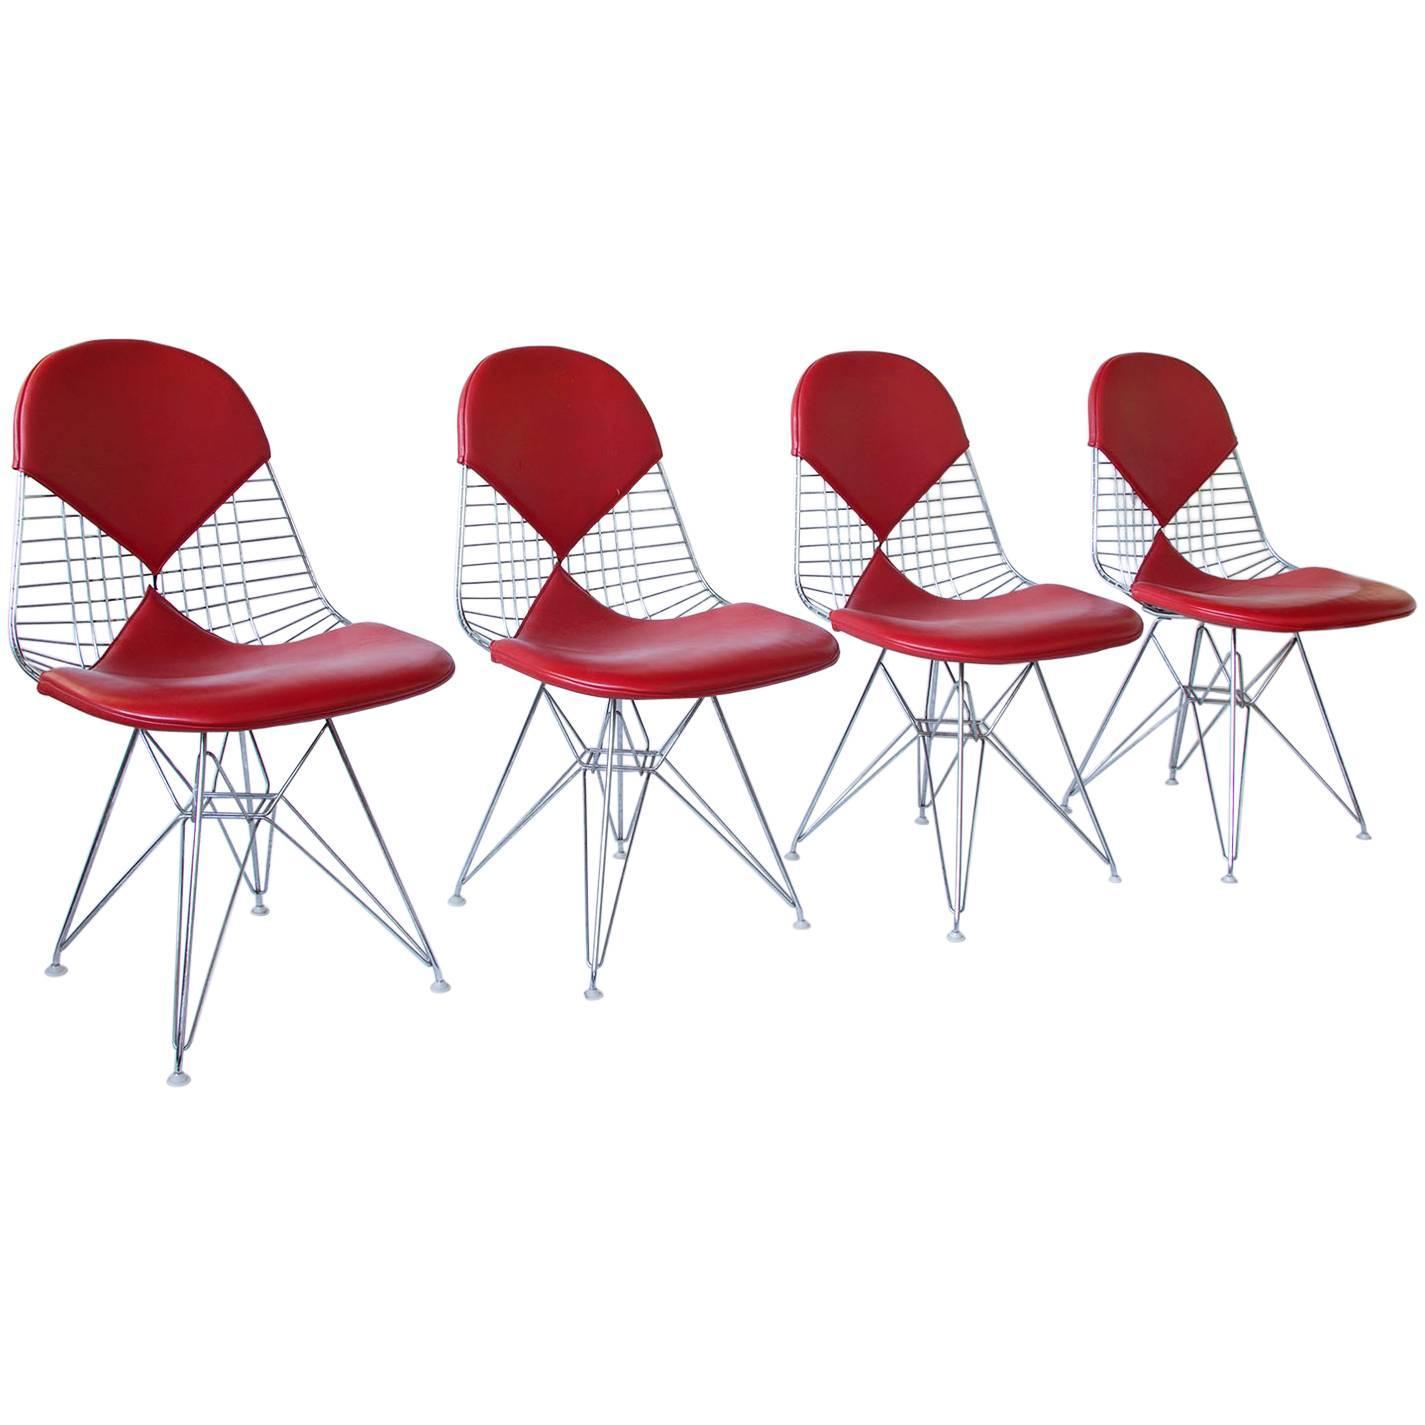 eames leather chair dining best covers for wedding 1950 charles and ray set of four dkr chairs red